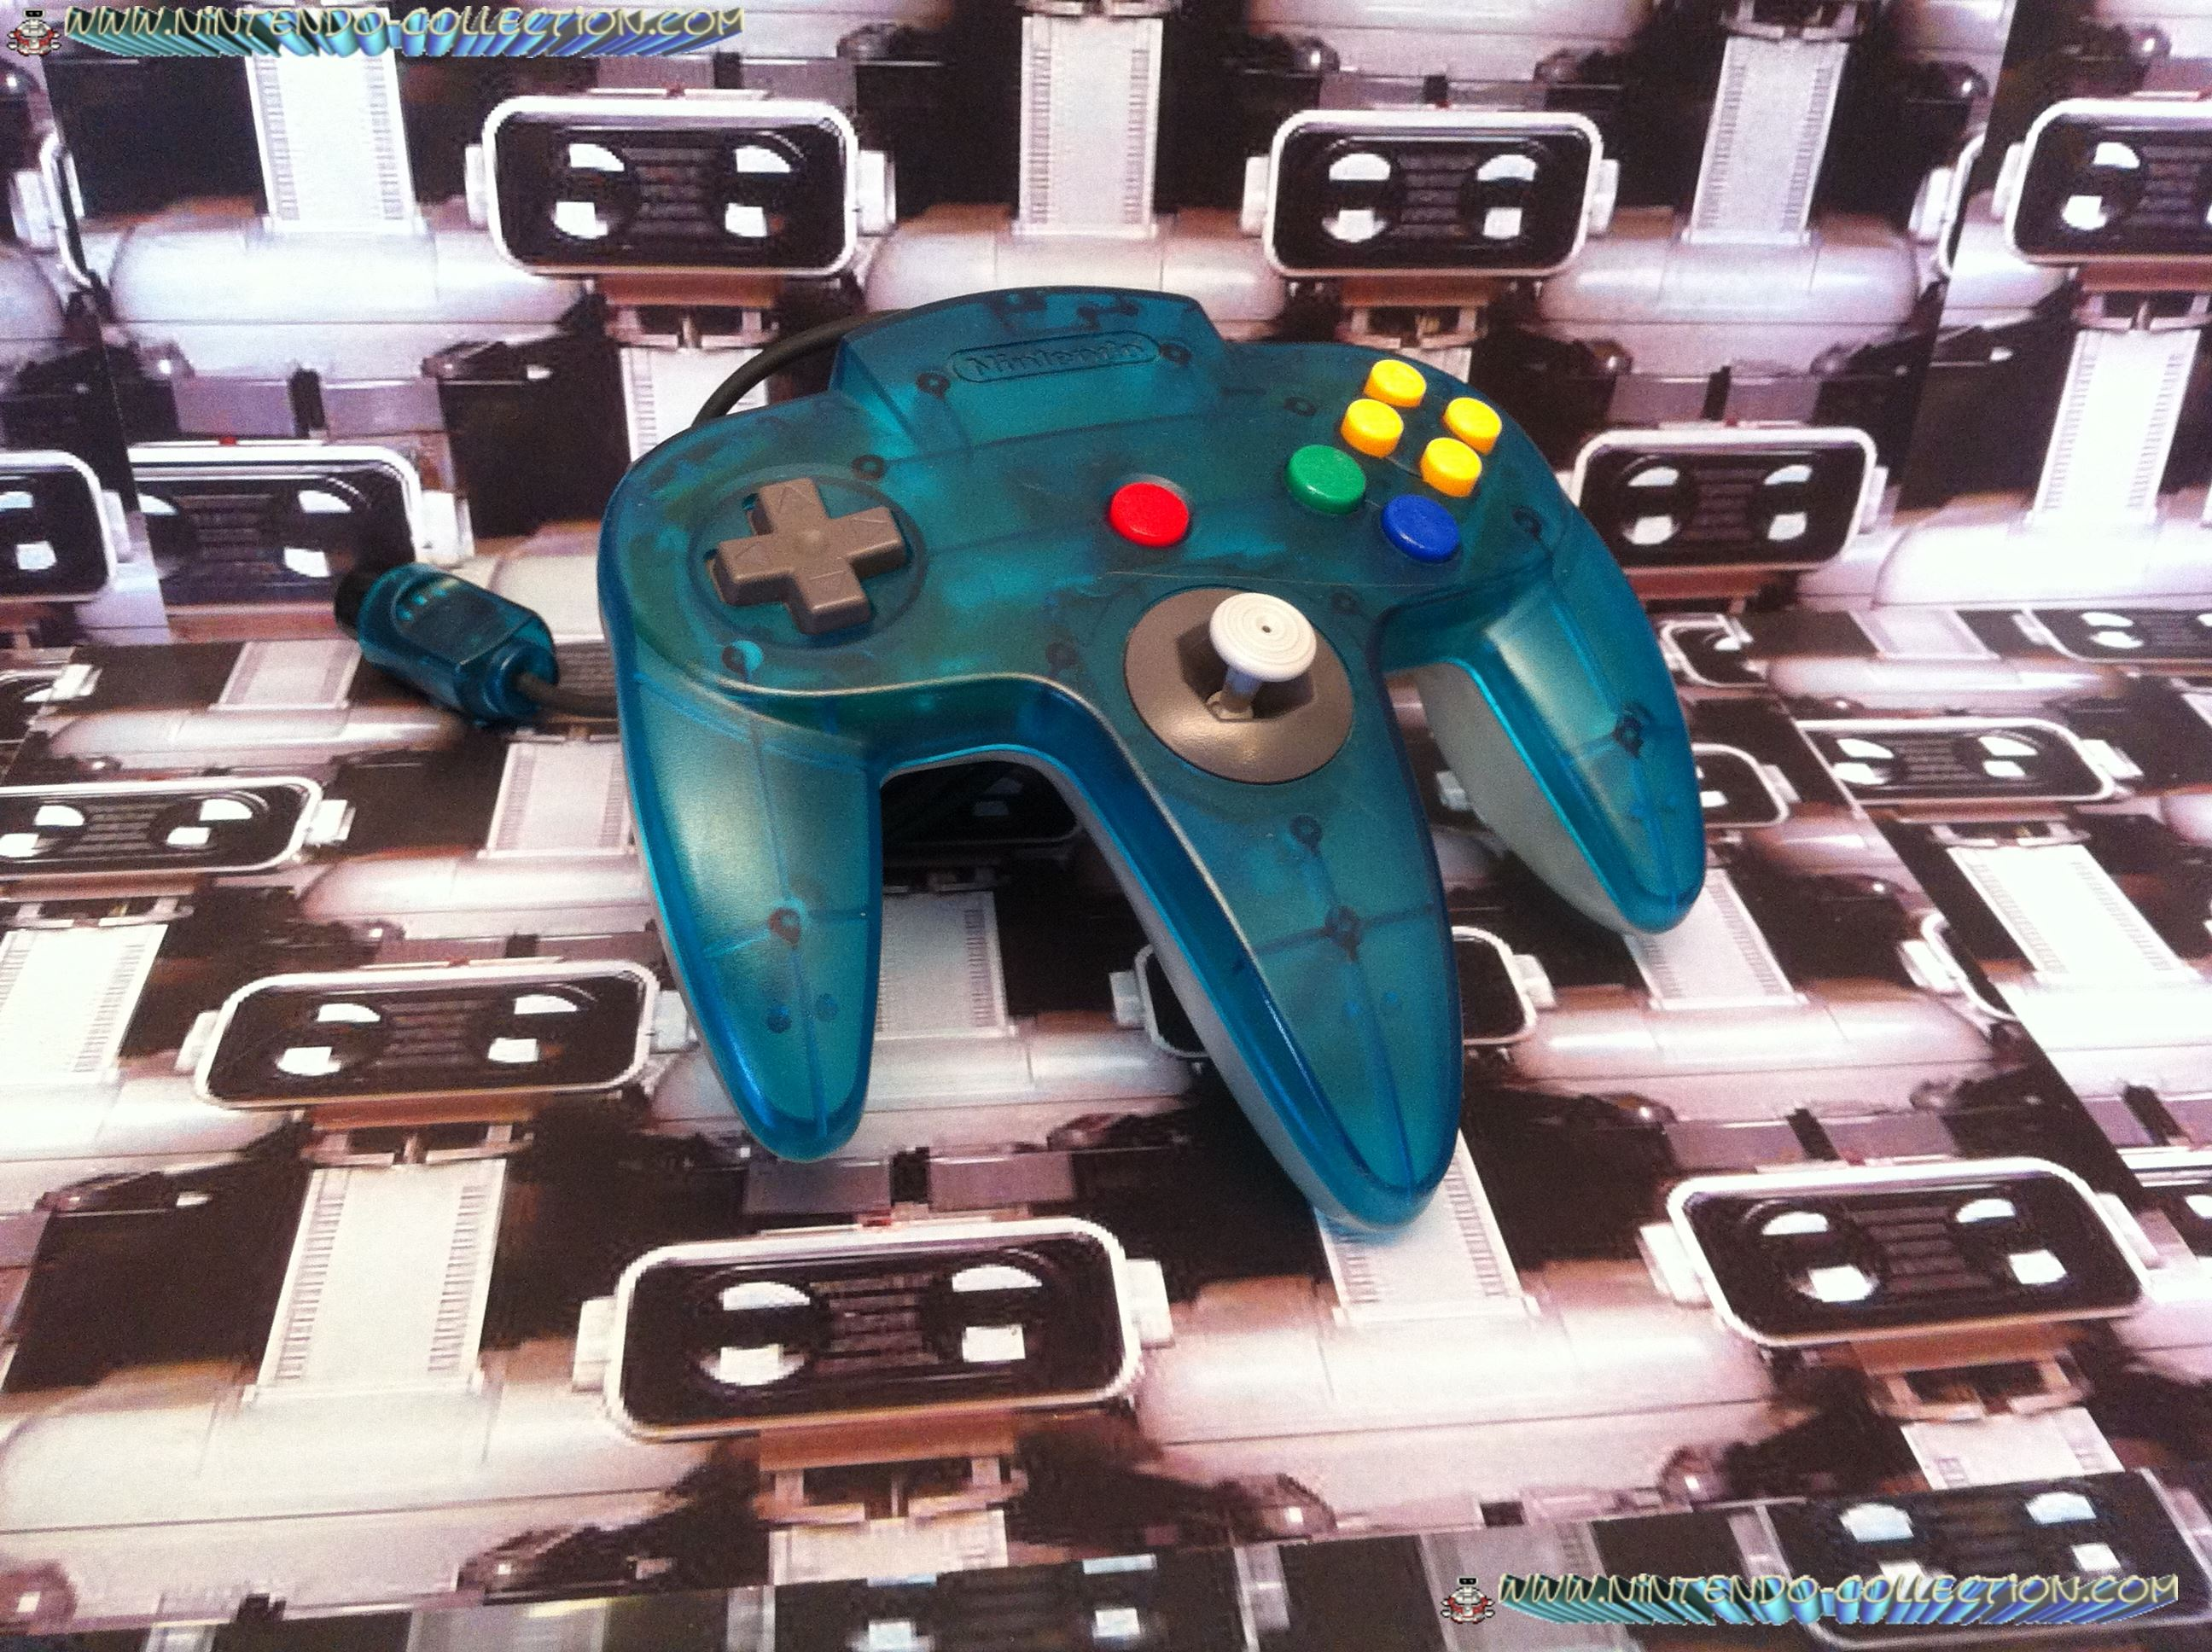 www.nintendo-collection.com  - Nintendo N64 Controller Clear Blue and clear white -  Manette Bleue t